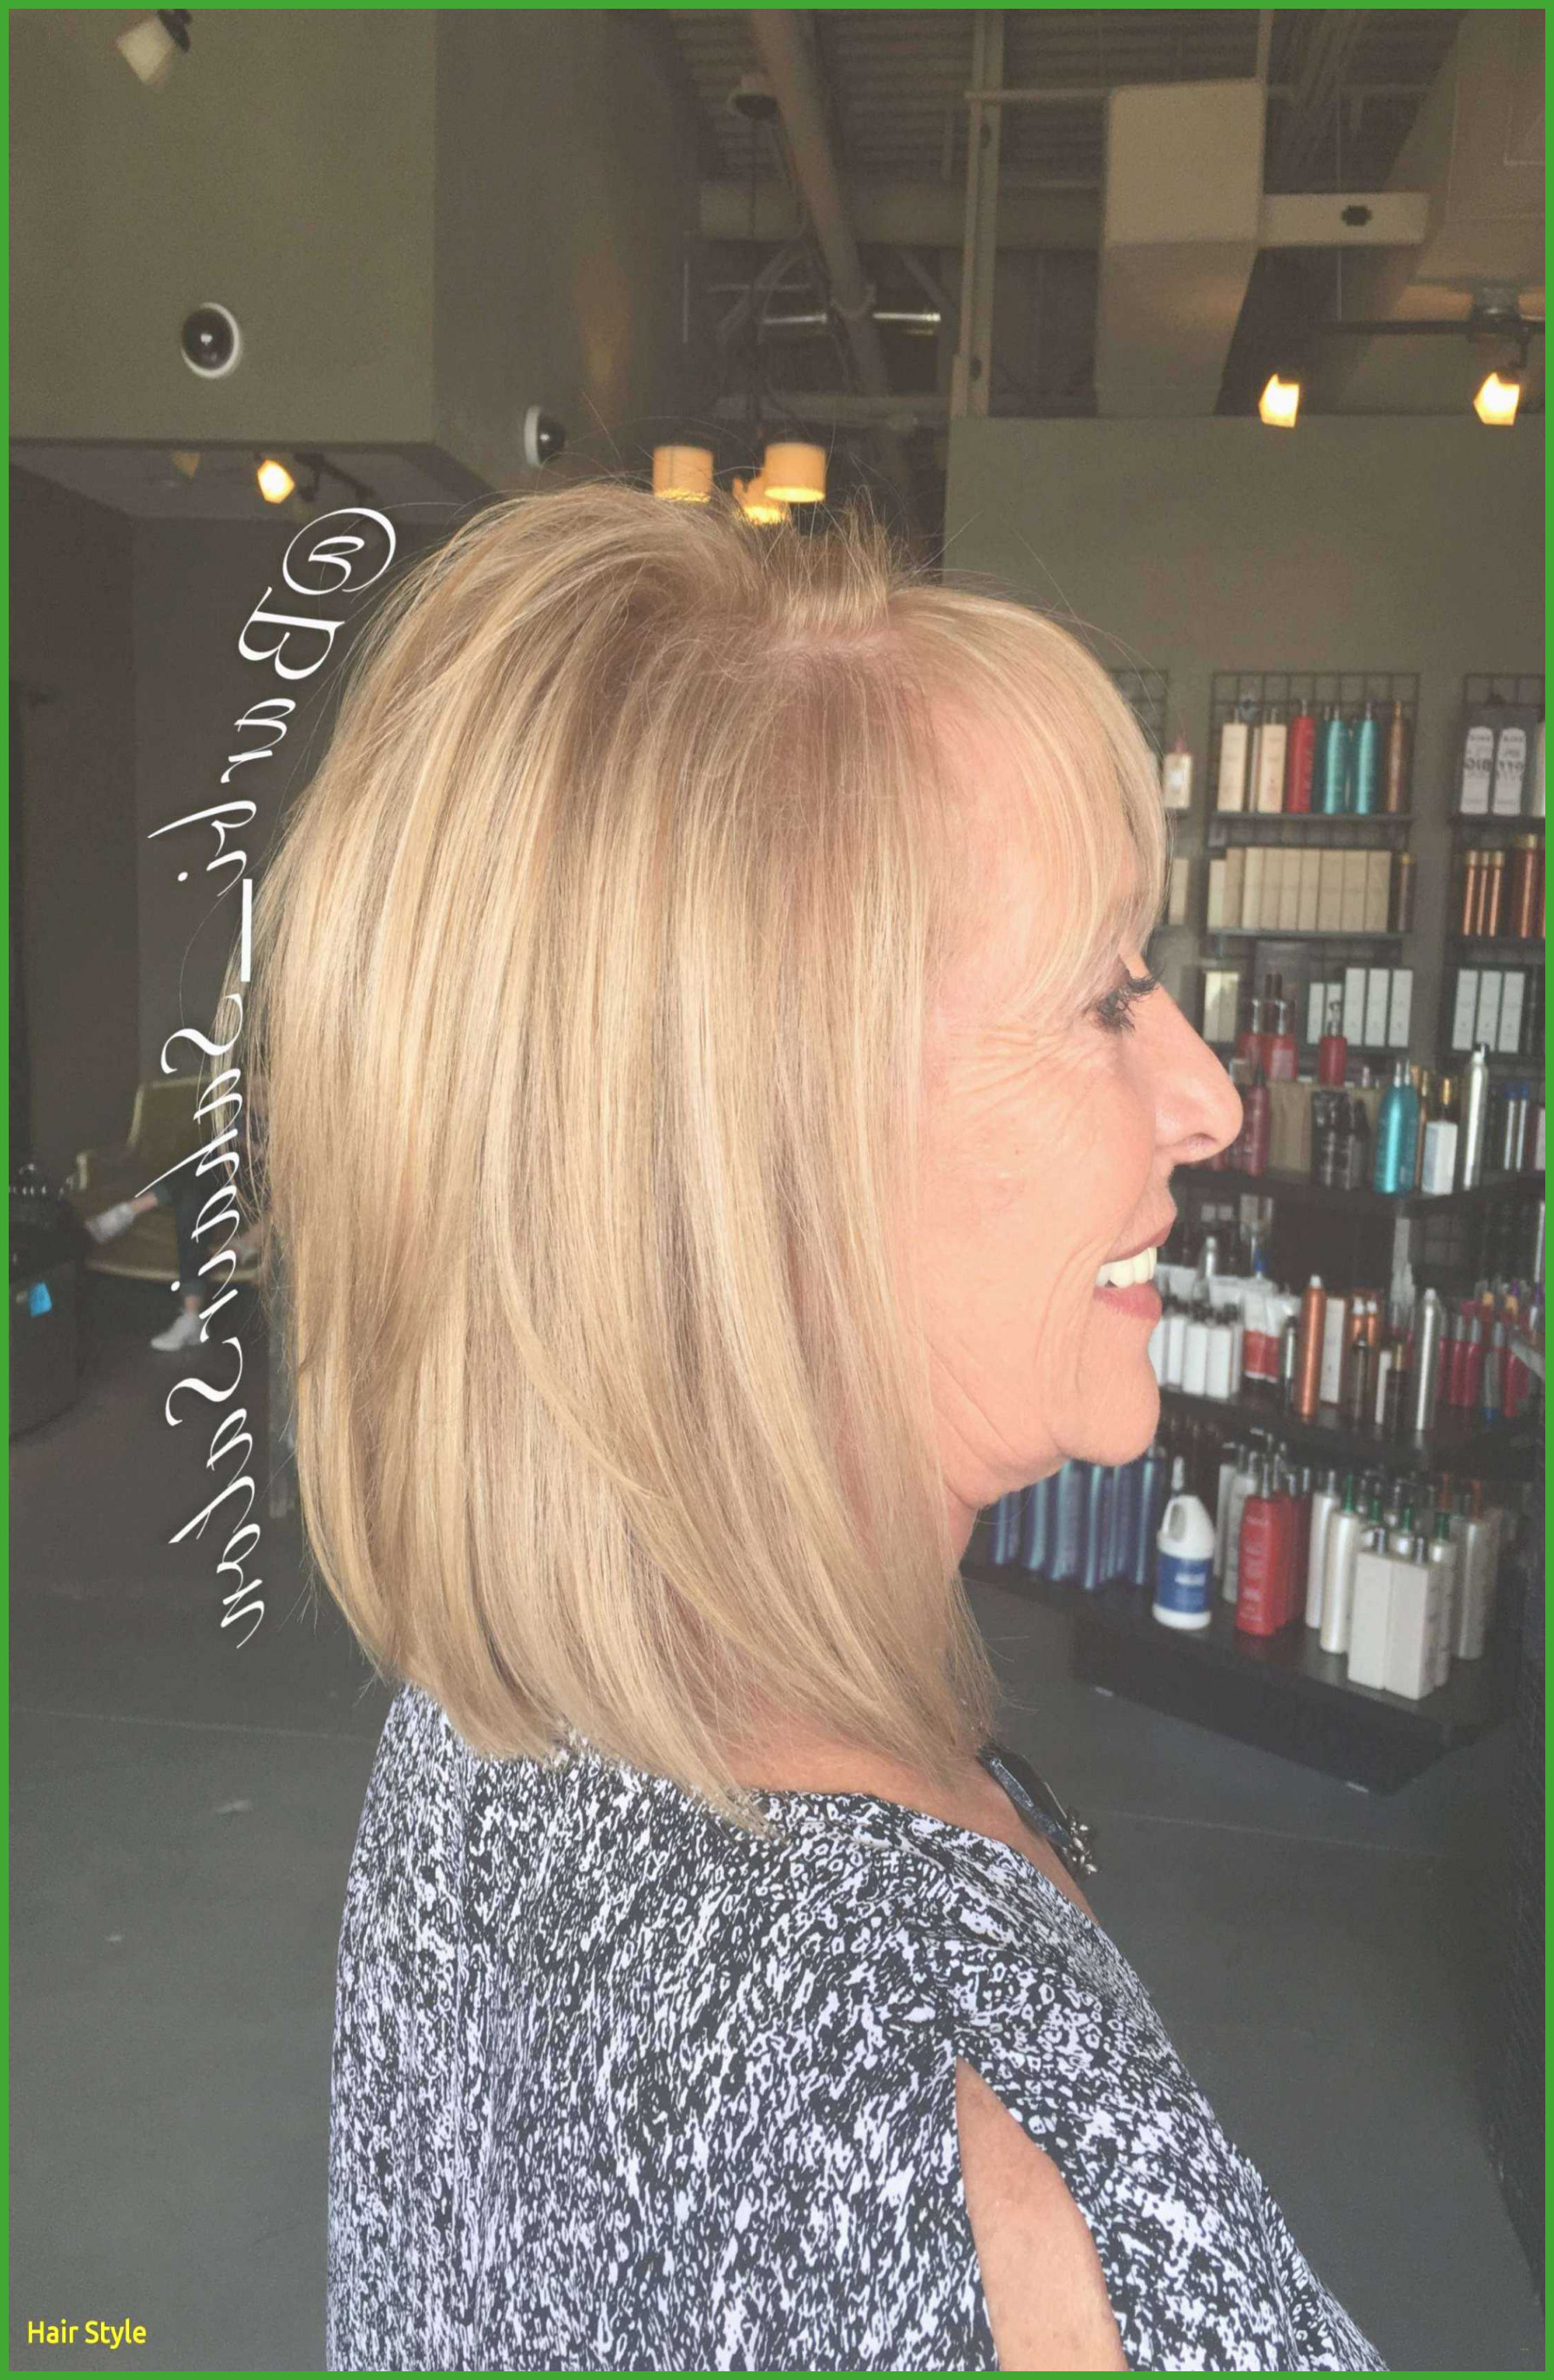 Medium To Short Length Layered Hairstyles Beautiful Top 20 Short To Pertaining To Short To Mid Length Layered Hairstyles (View 14 of 25)